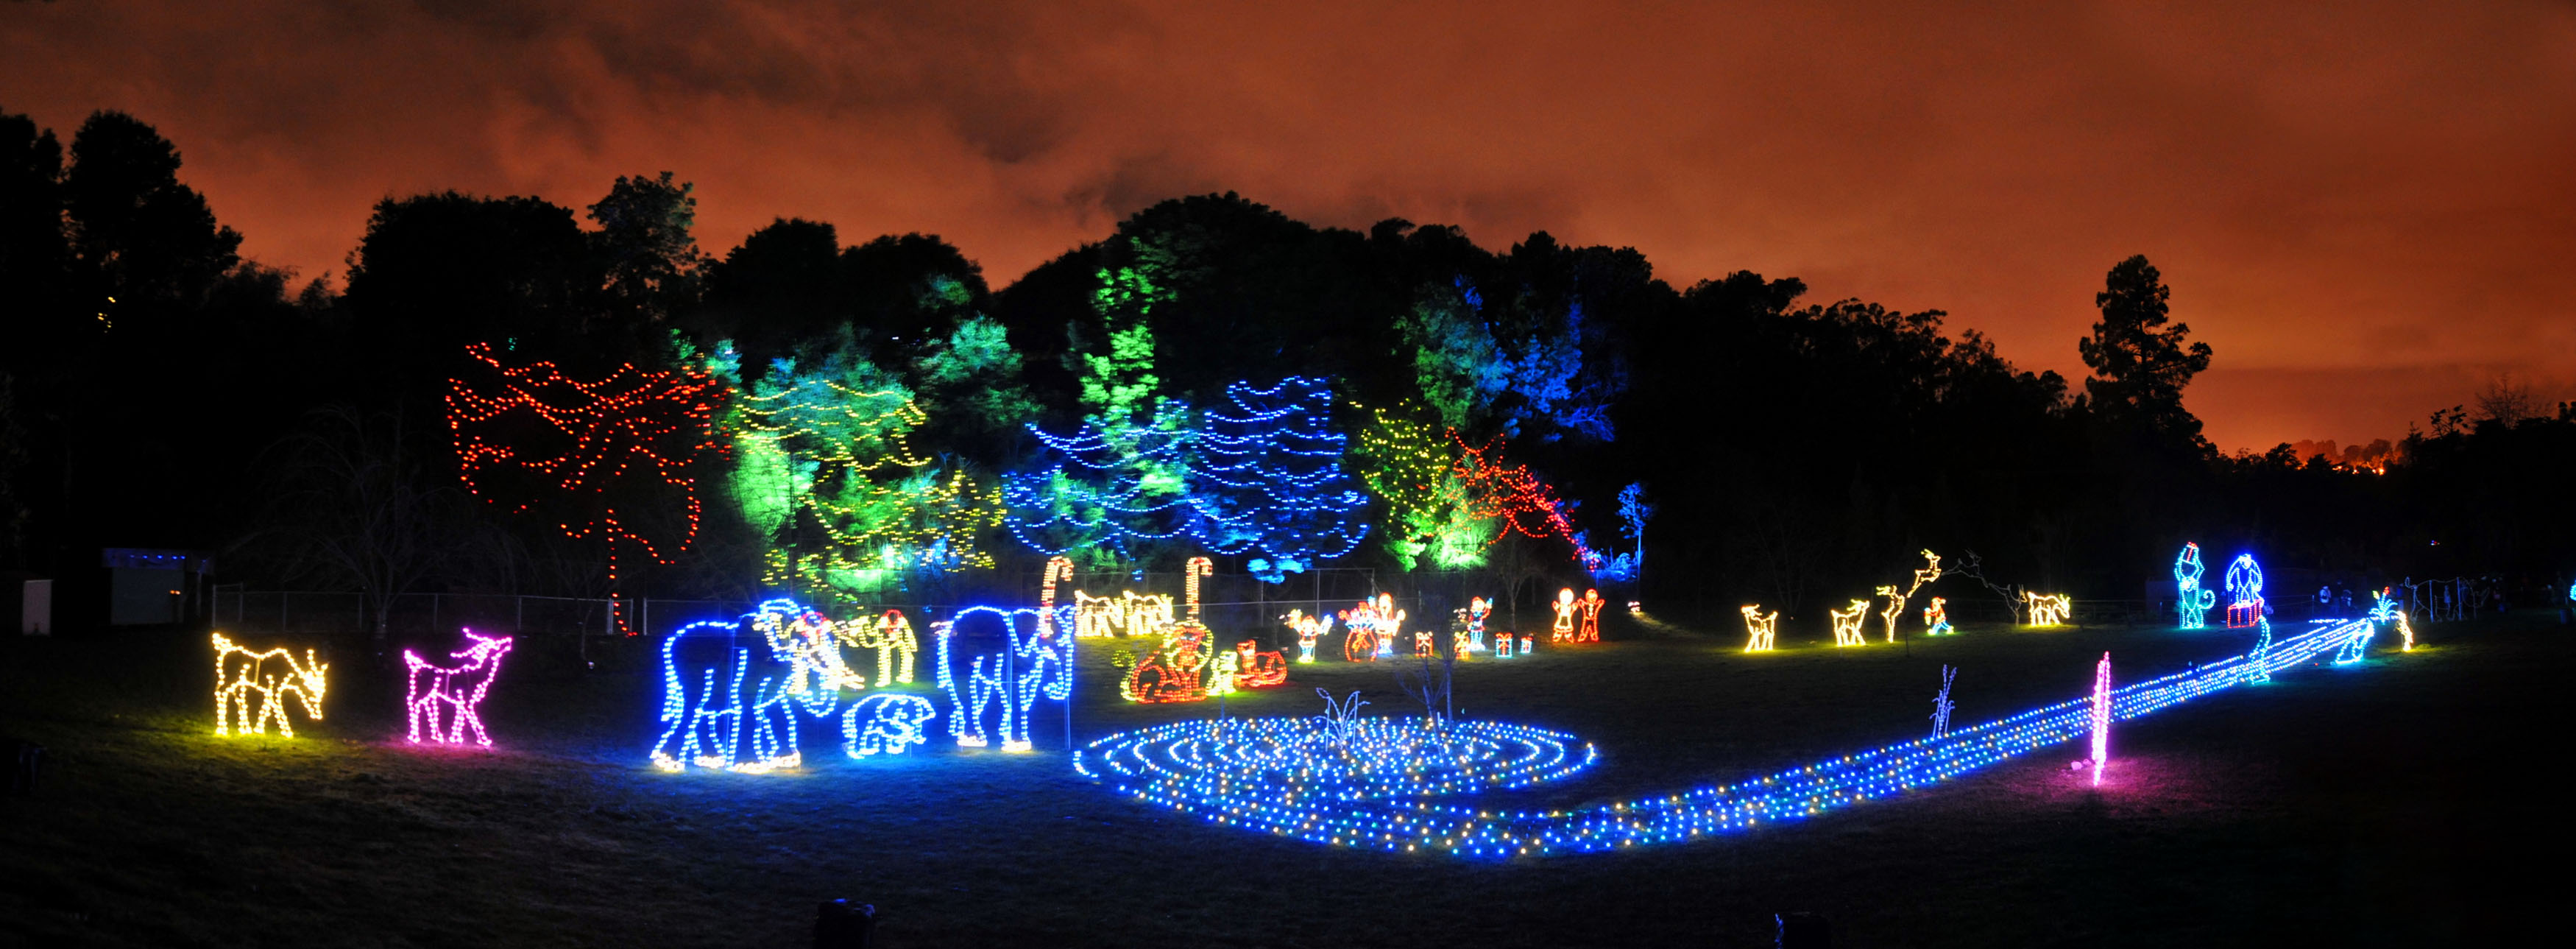 Christmas Lights at the Zoo? | Northern Virginia Real Estate | The ...